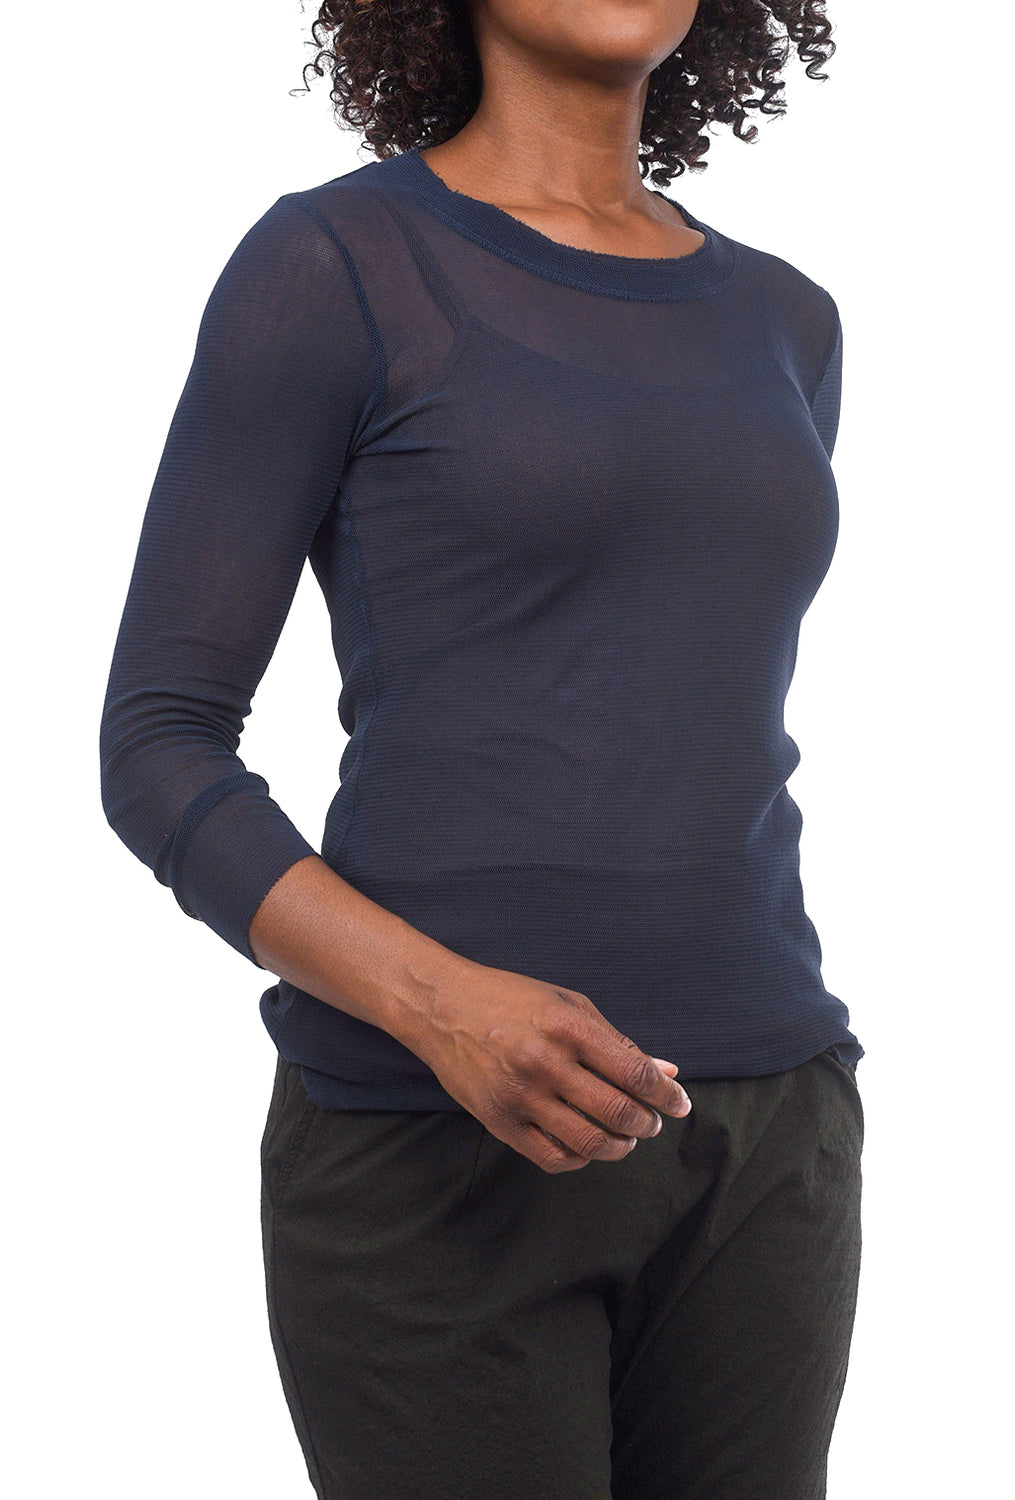 Cynthia Ashby CA Longer Mesh Tee, Navy